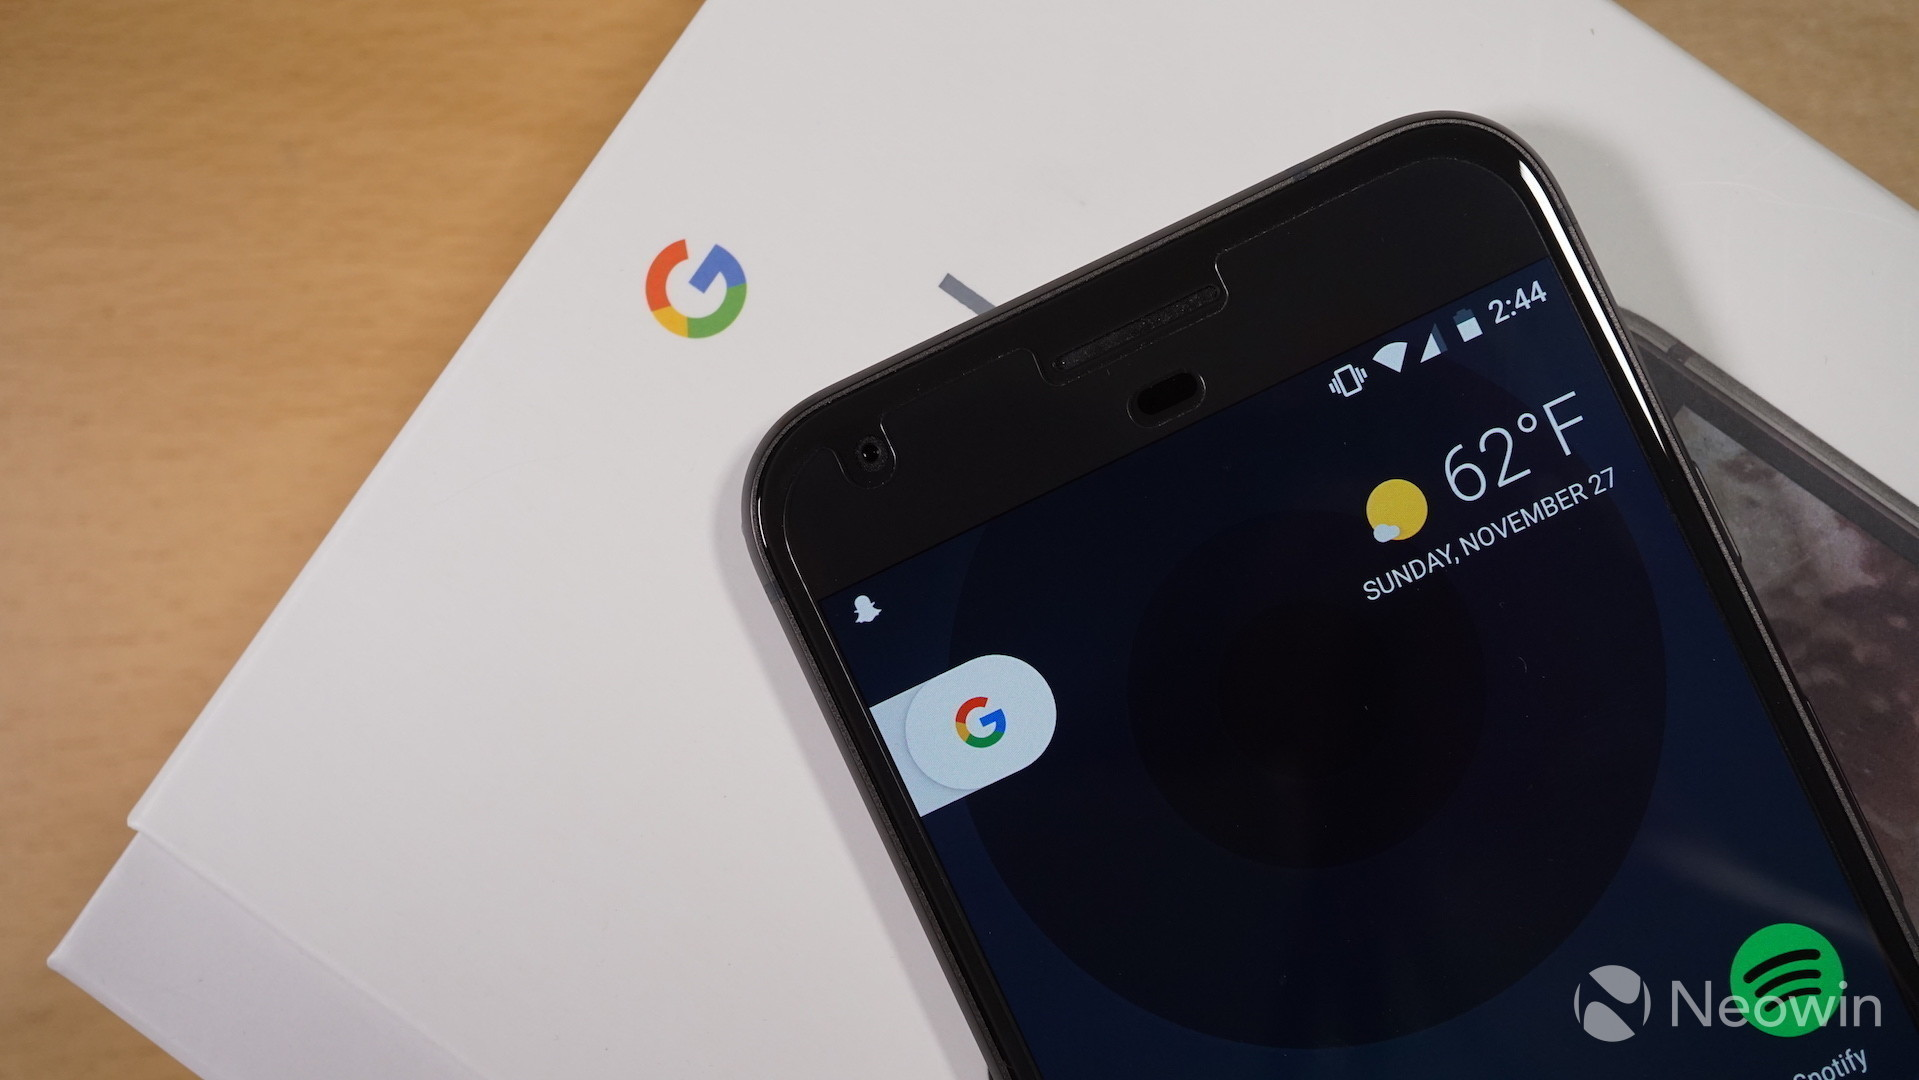 Google Pixel 2 is Definitely a Good Replacement for Nexus 6